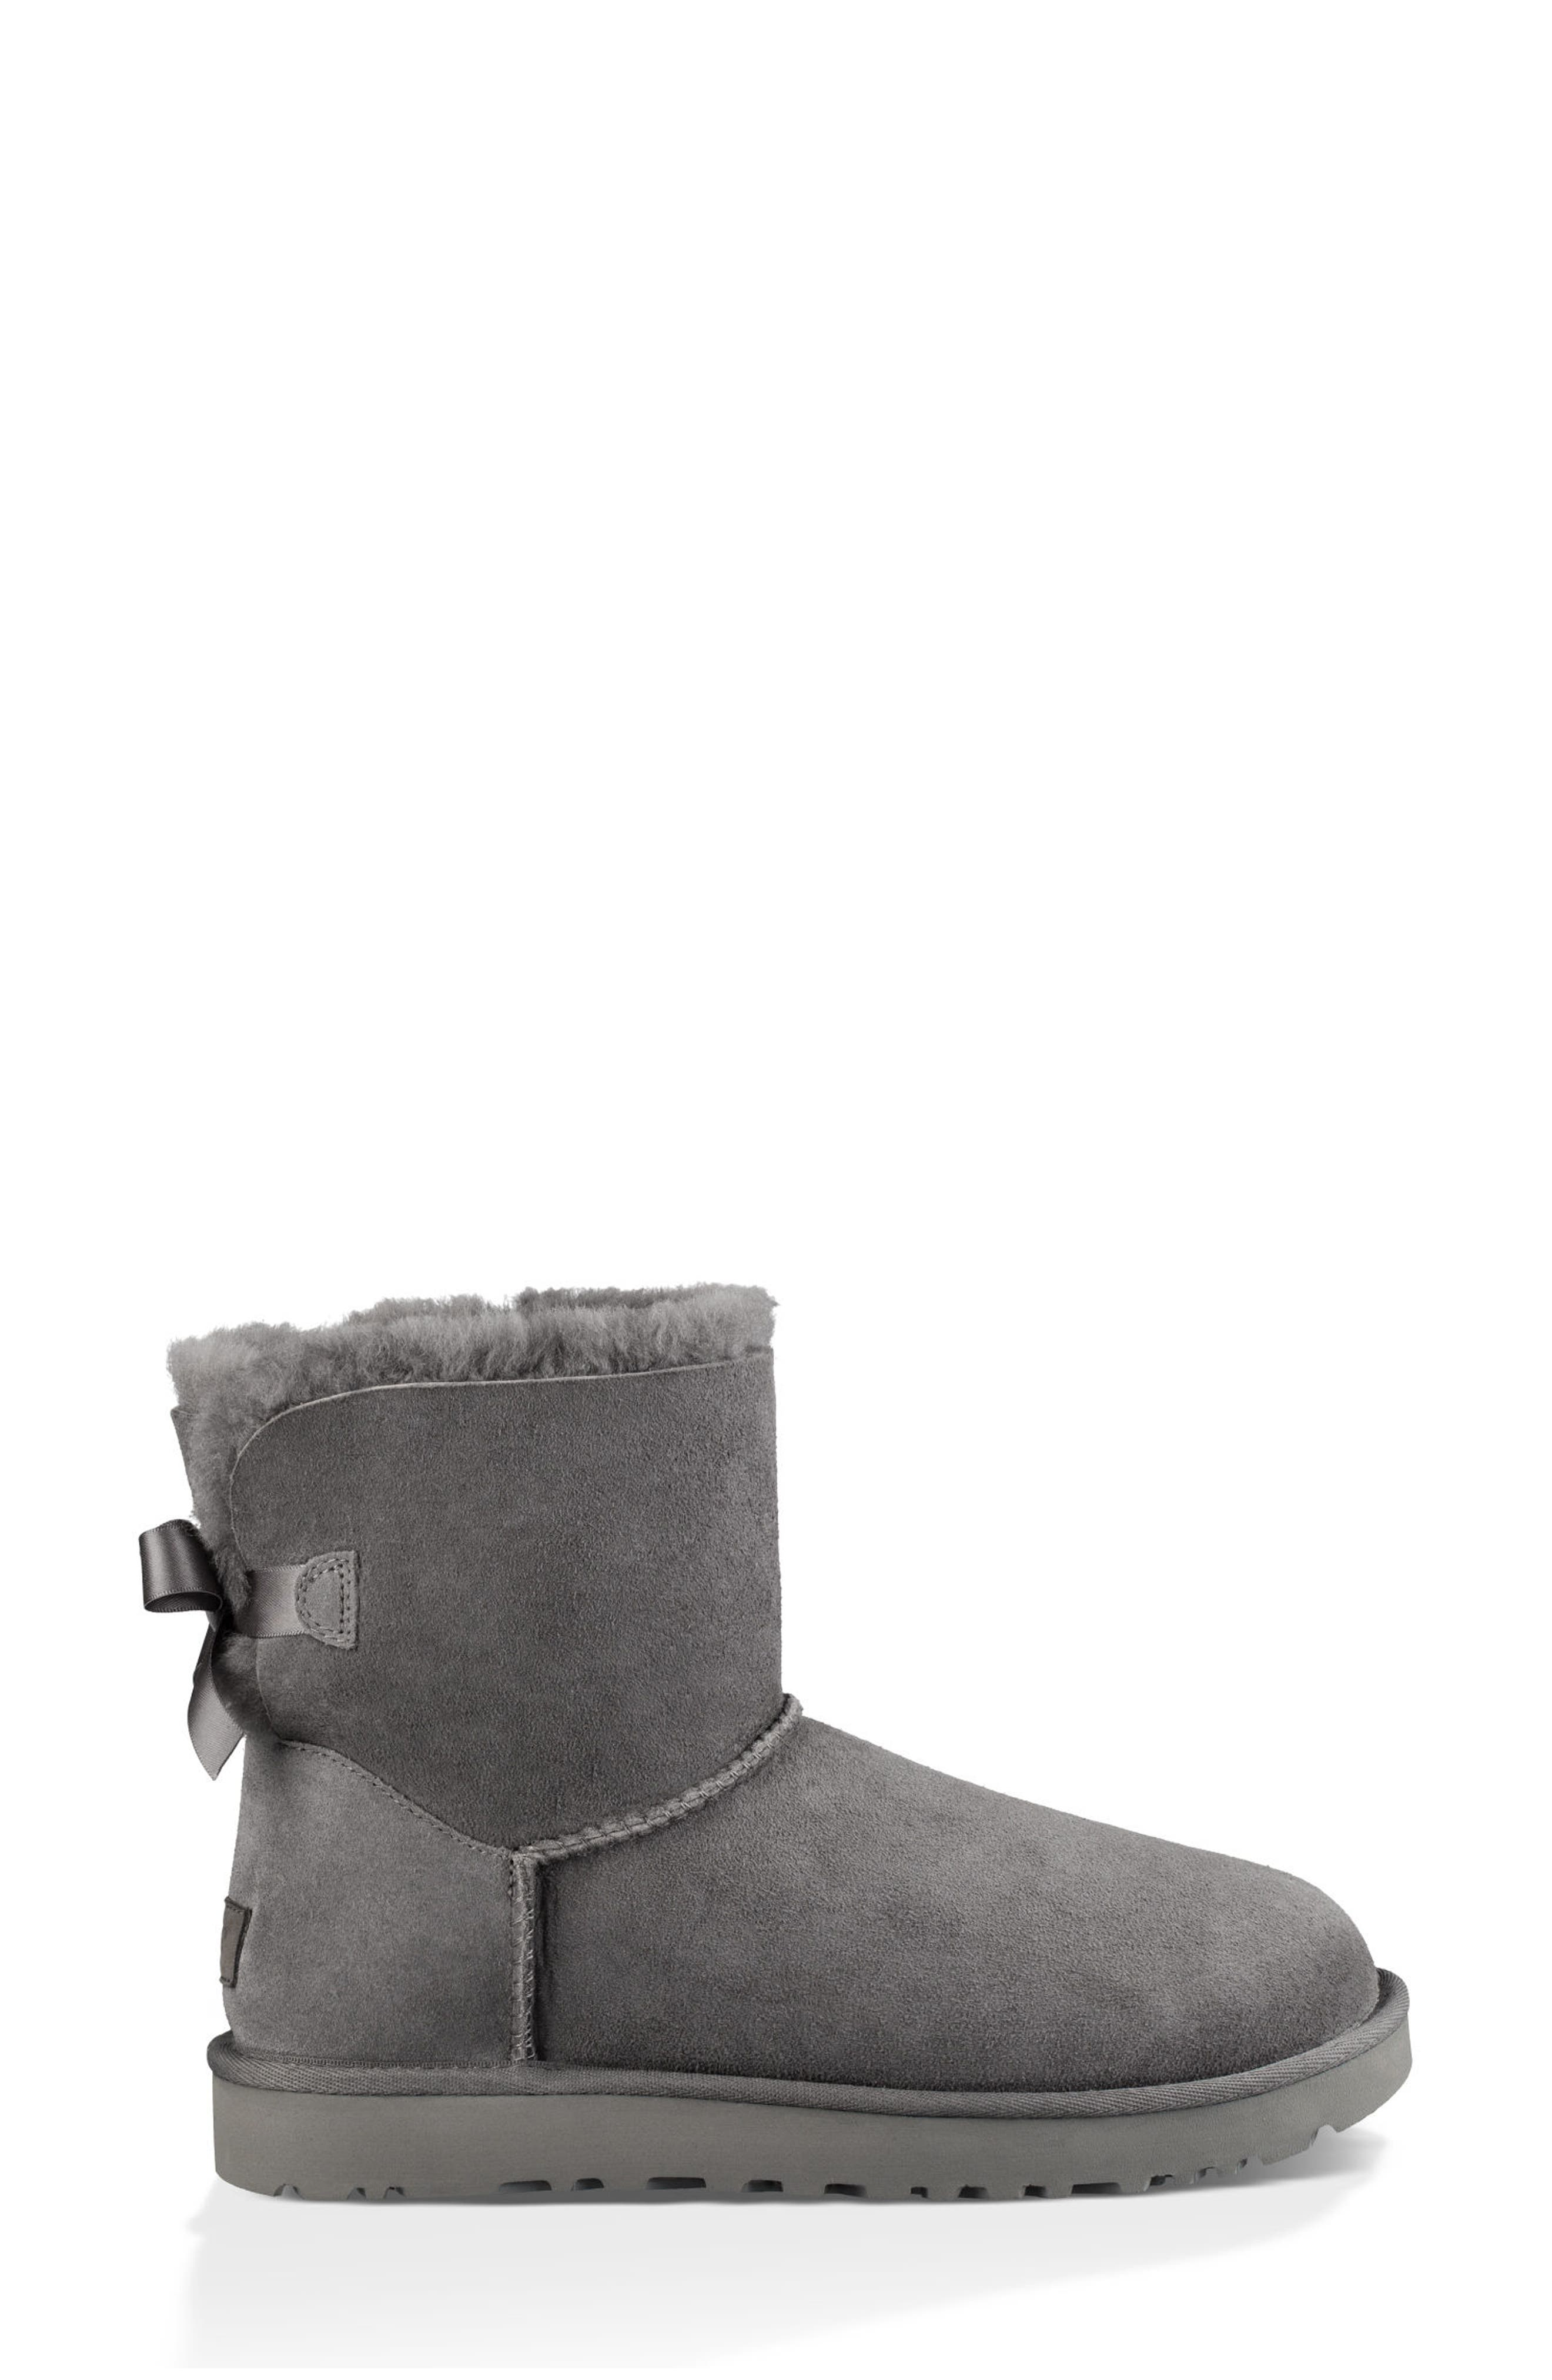 Mini Bailey Bow II Genuine Shearling Bootie,                             Alternate thumbnail 3, color,                             GREY SUEDE